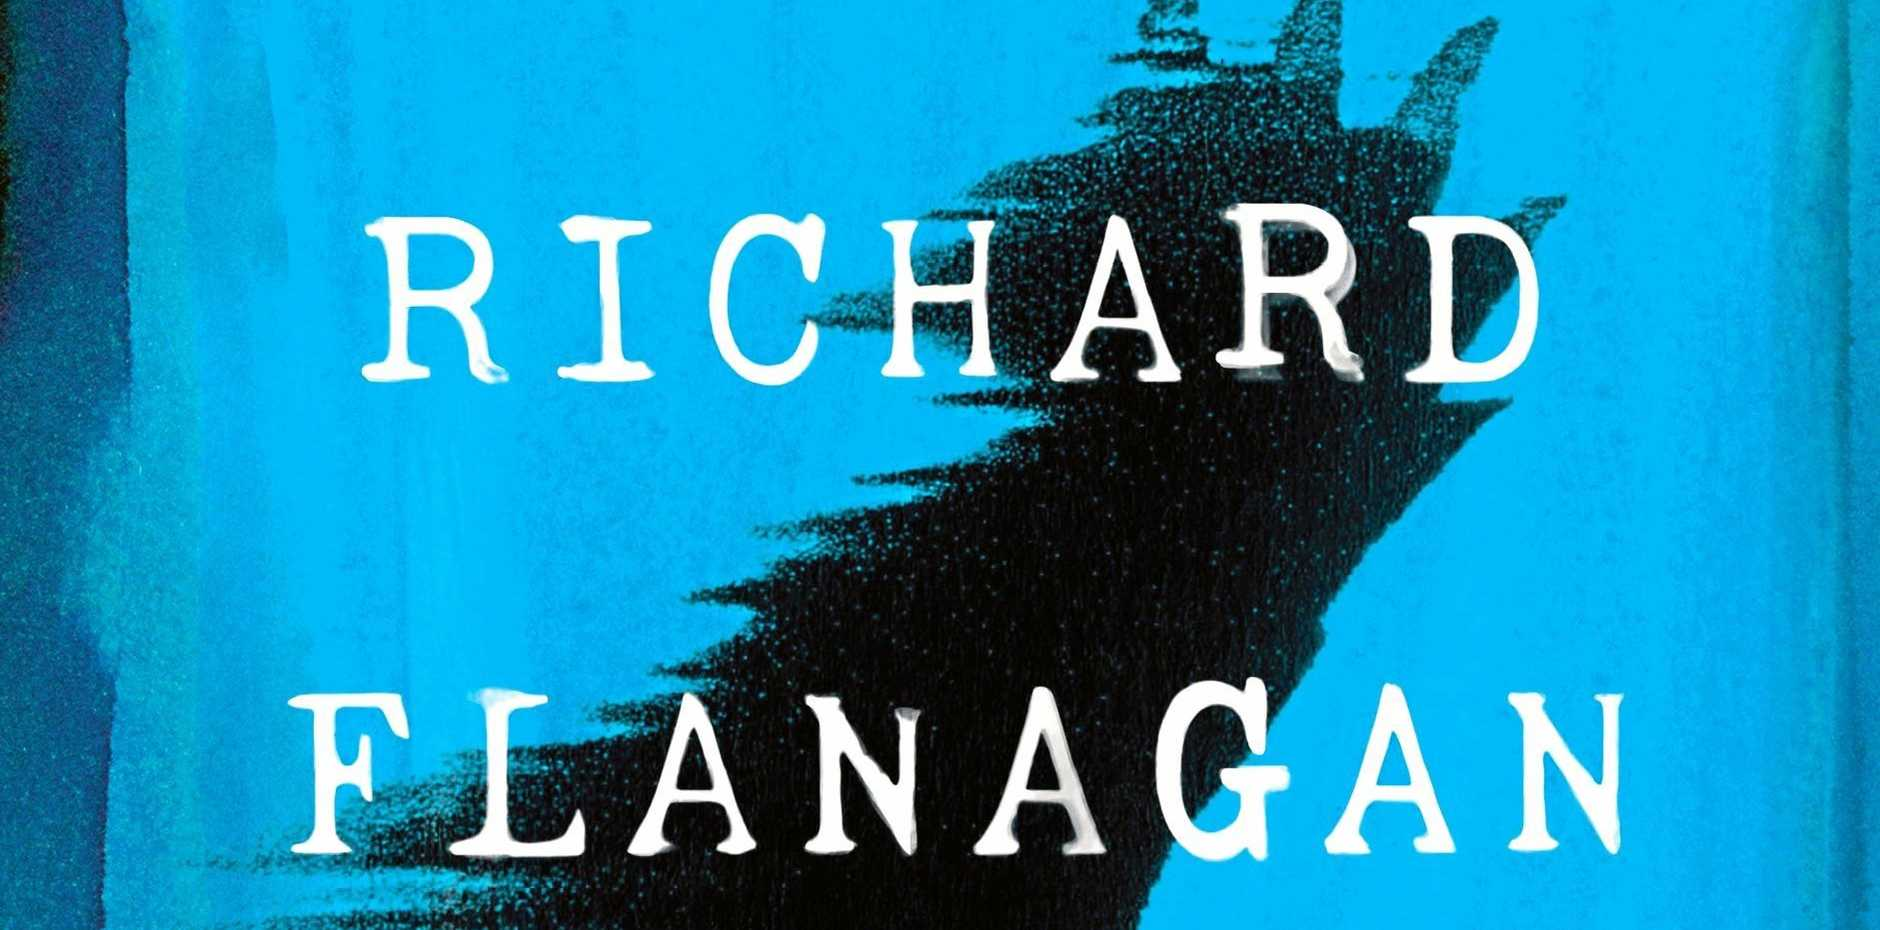 BOOKS: Richard Flanagan's newest book, First Person, is available in September.